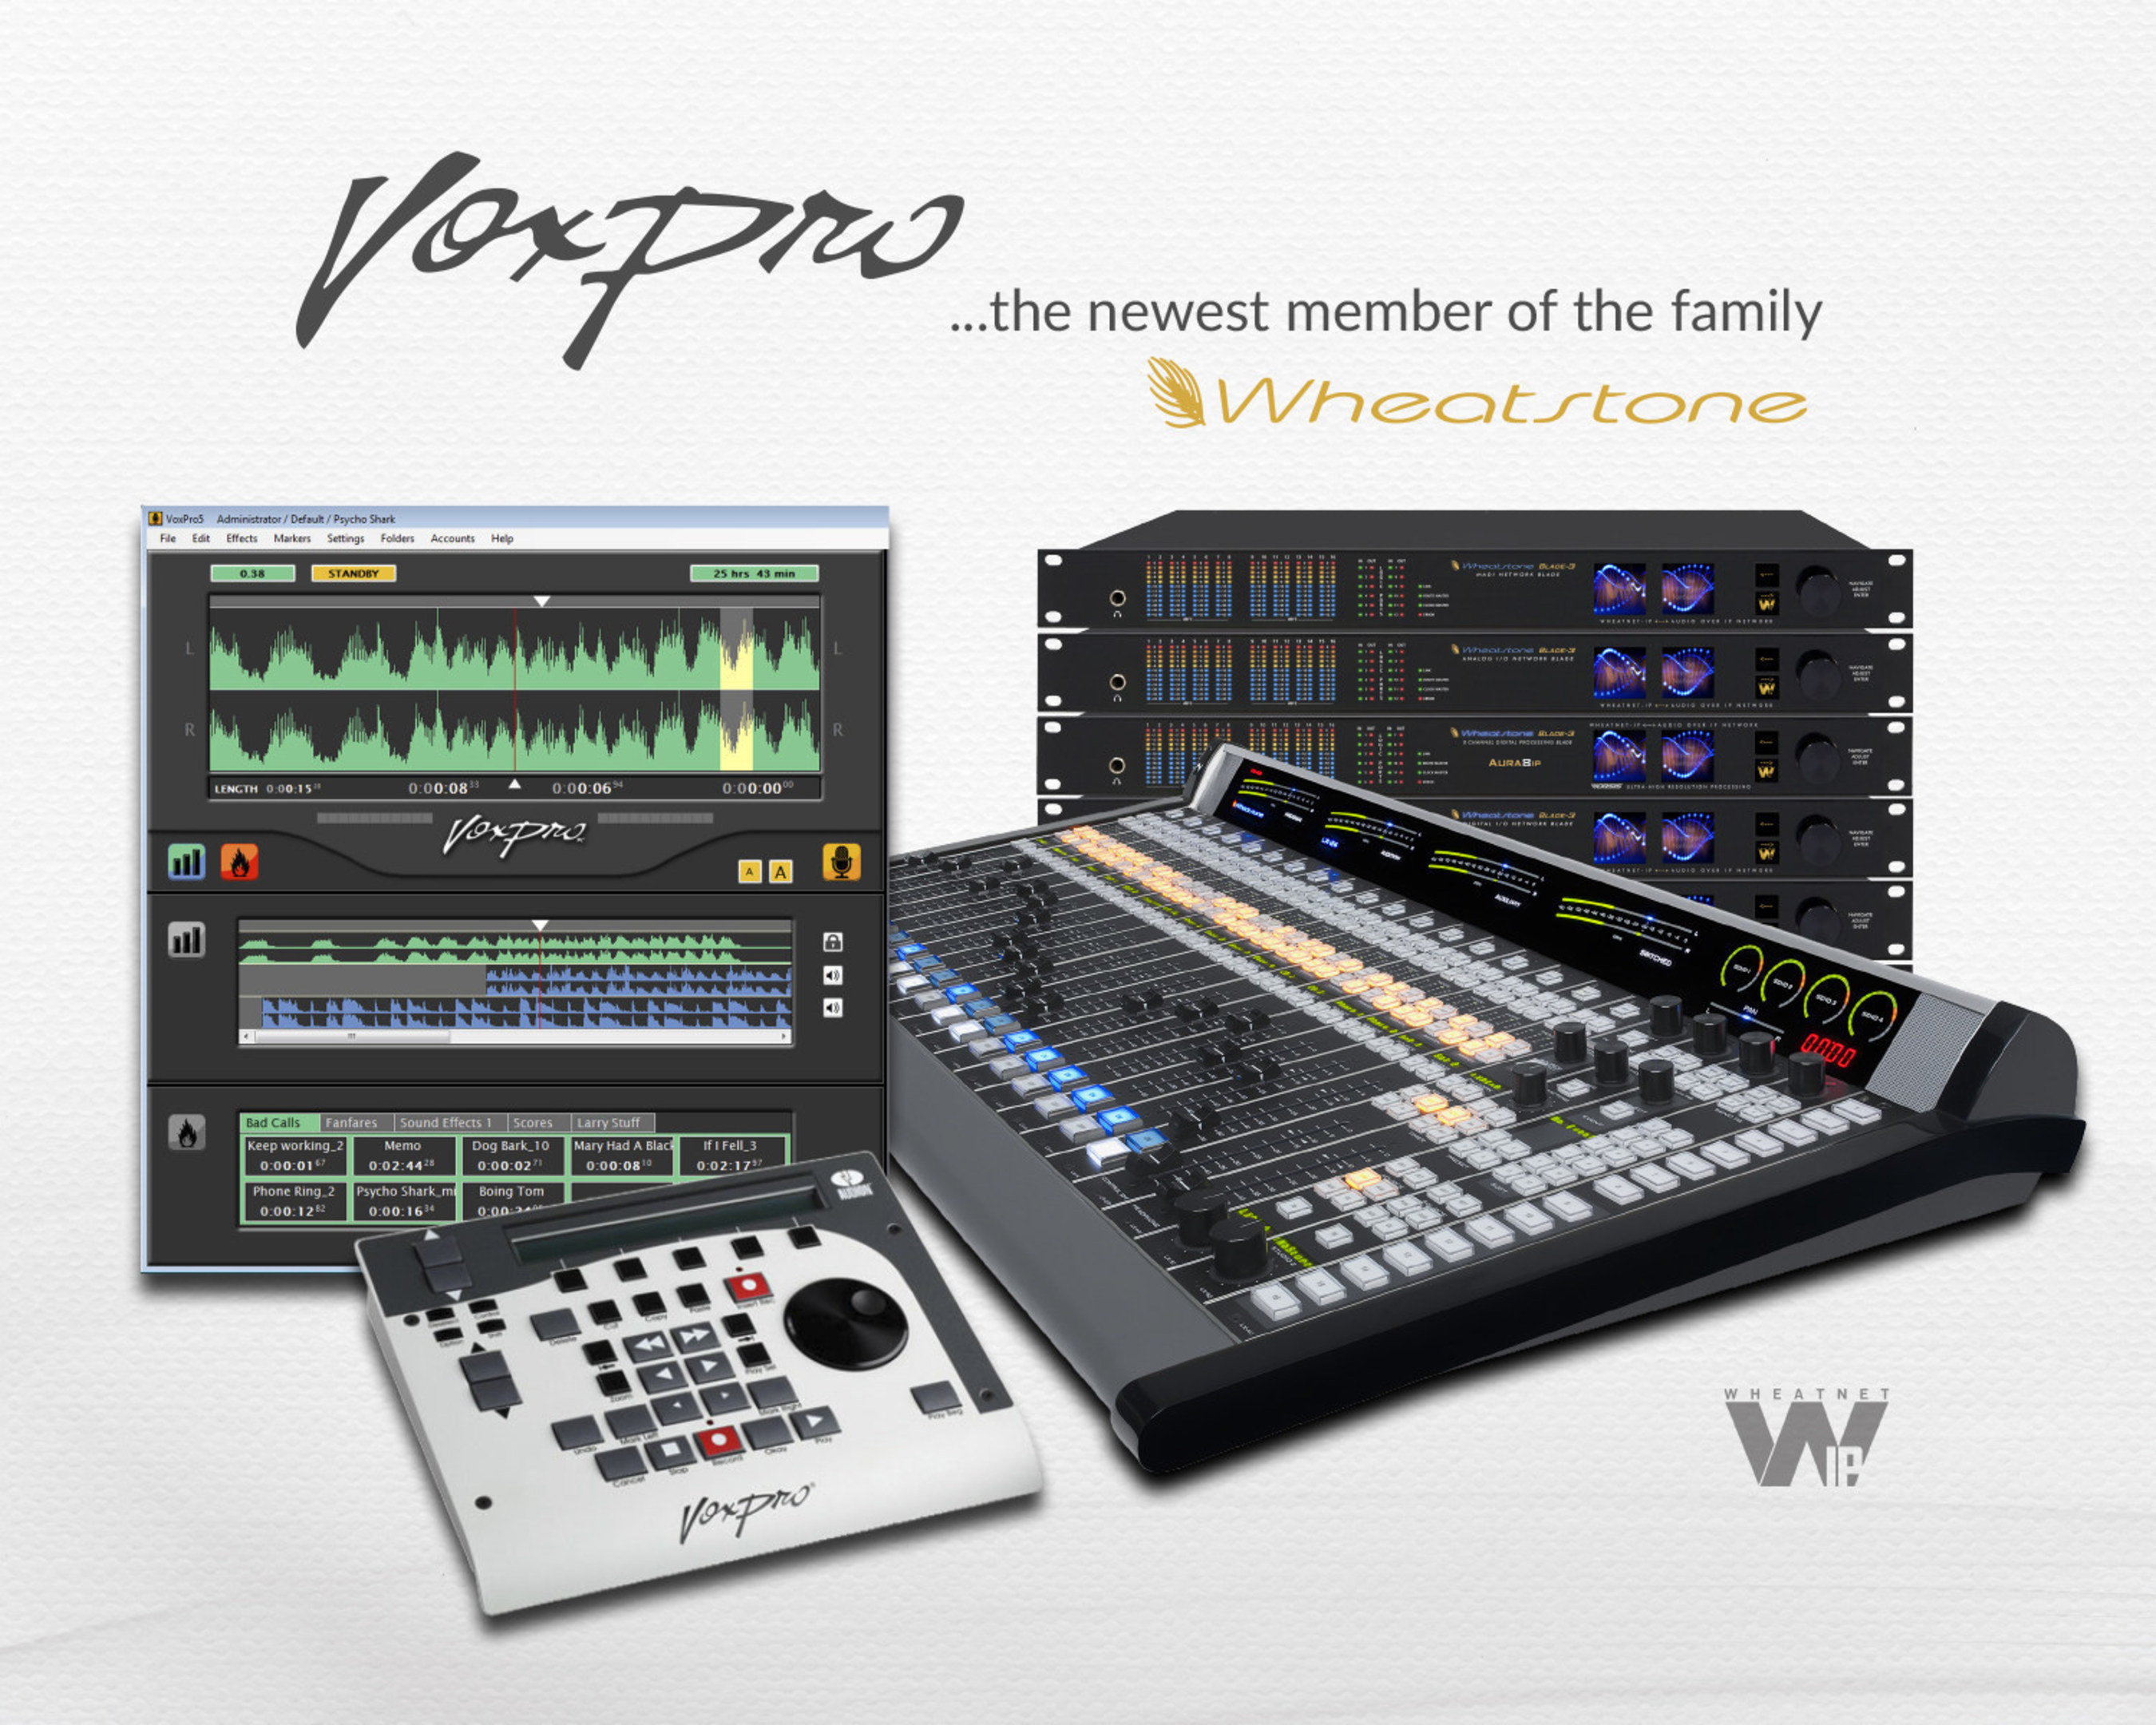 Wheatstone Acquires Audion Labs, VoxPro